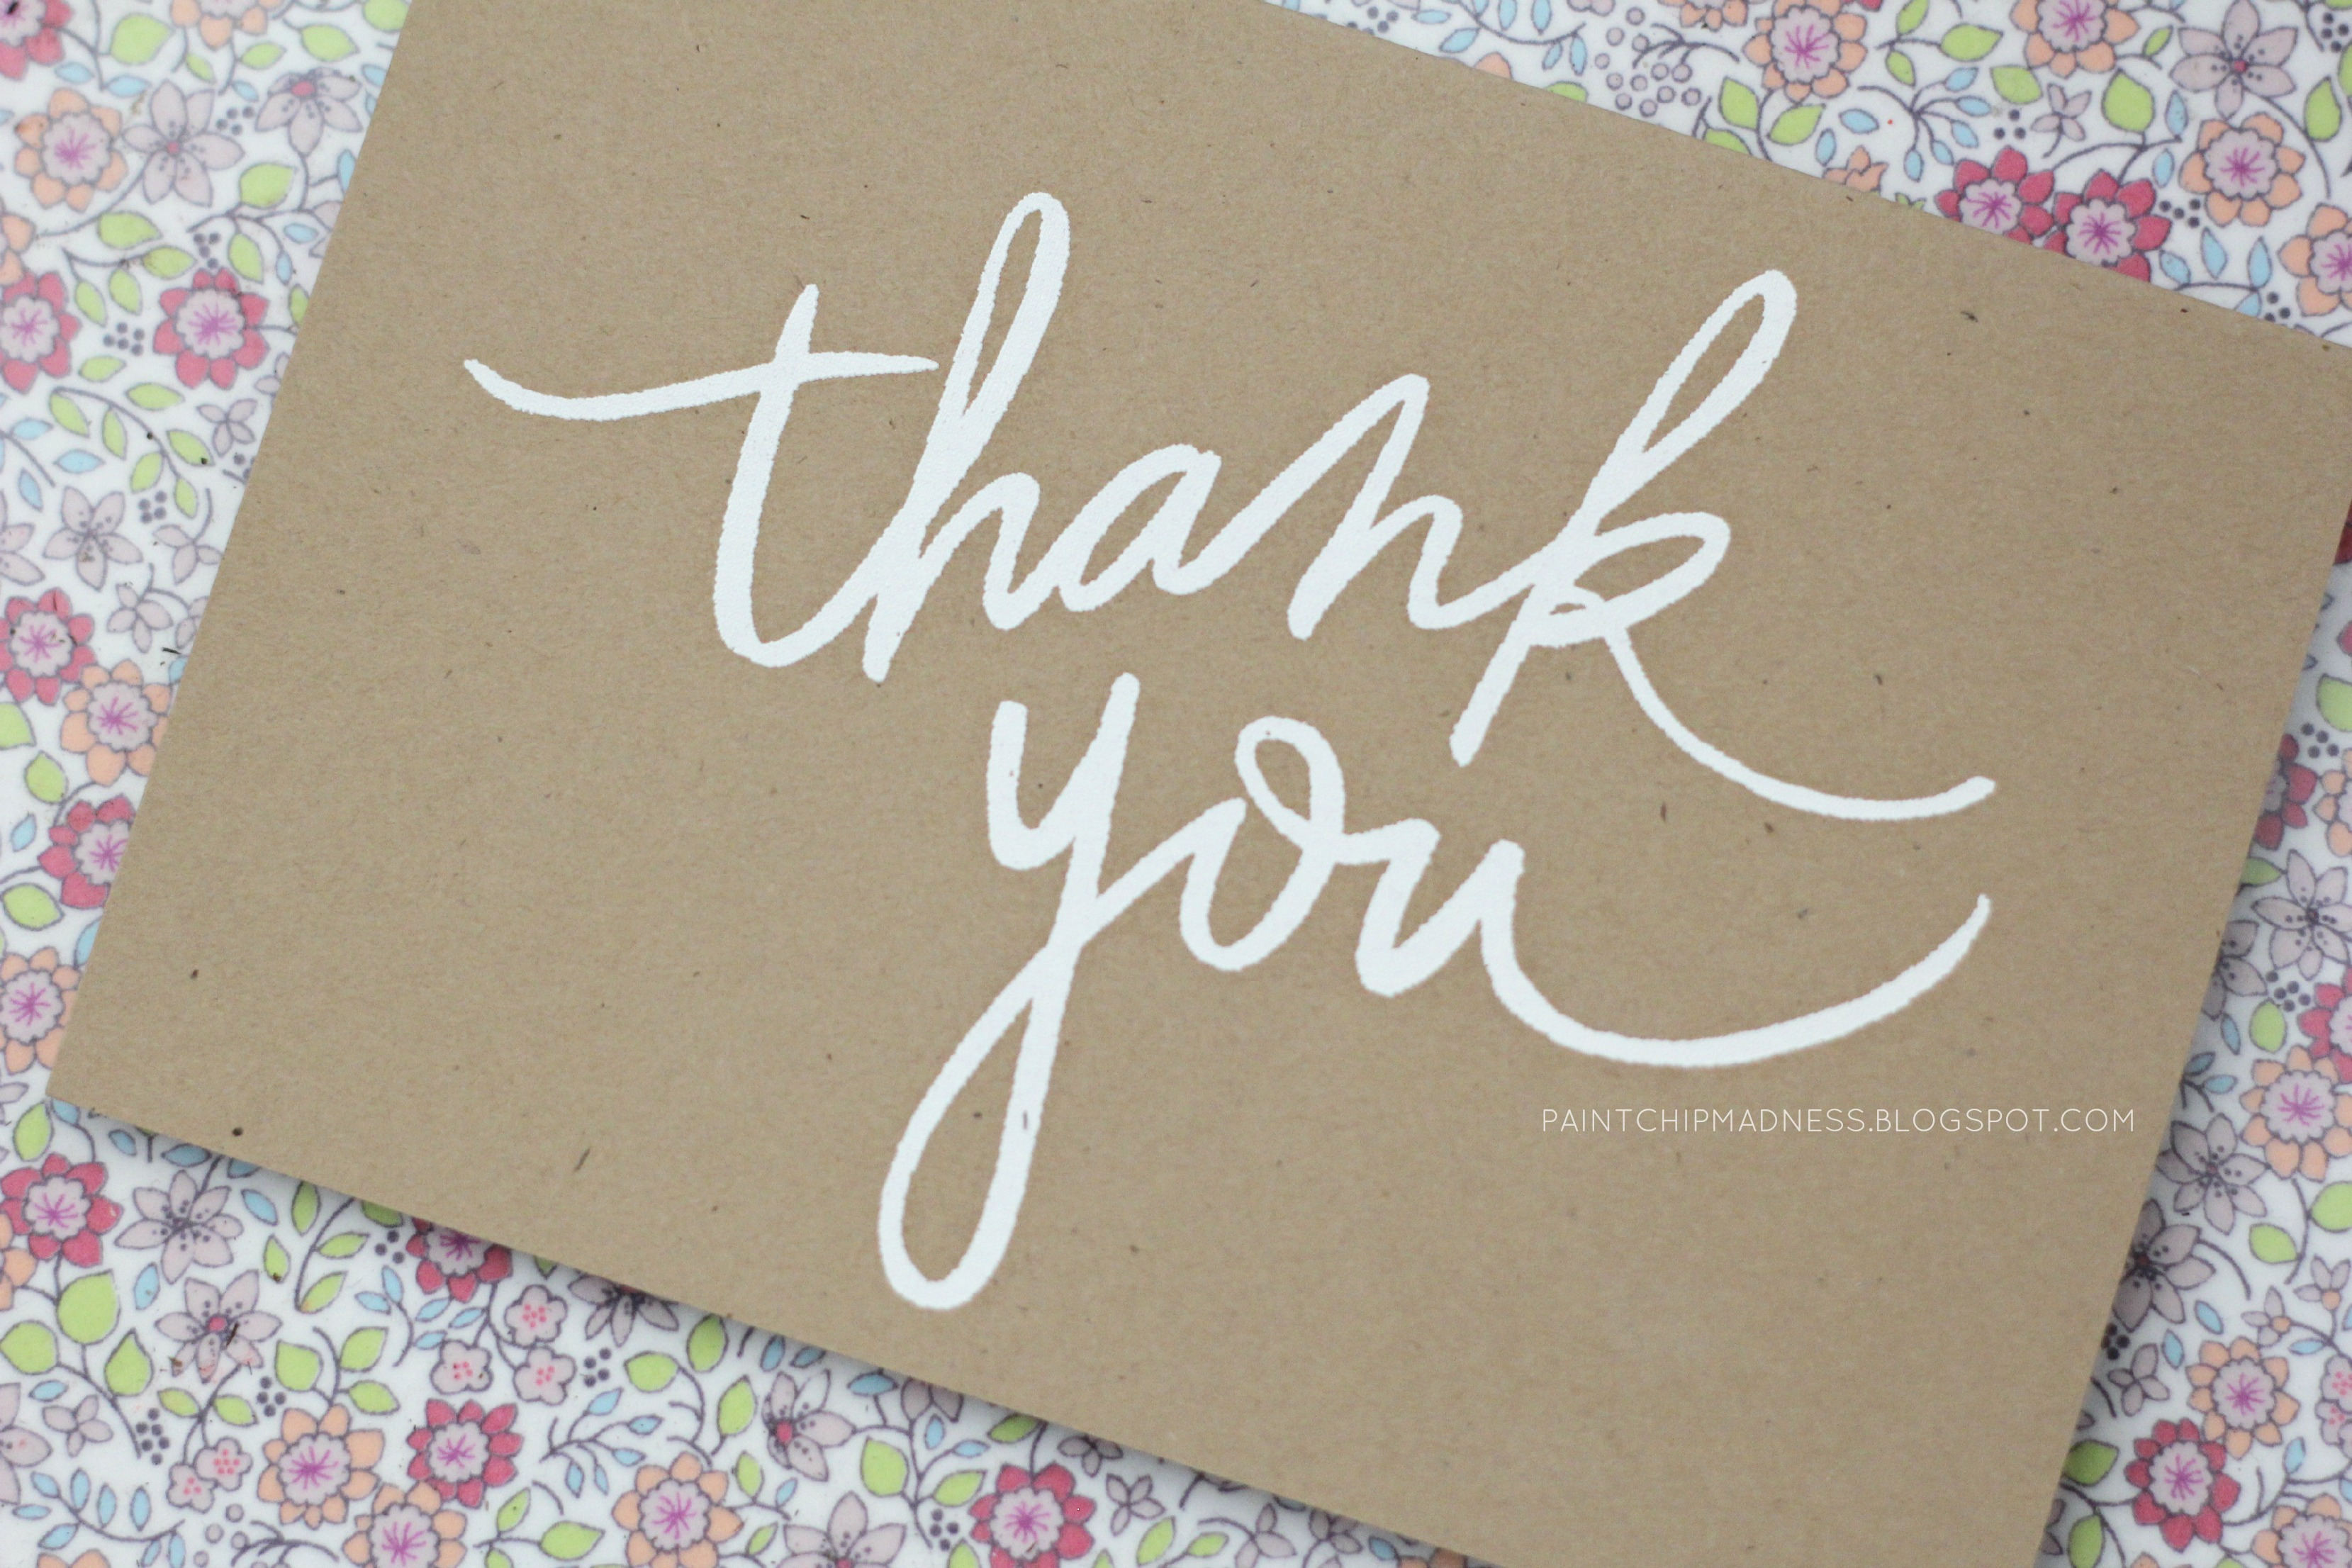 thank you notes the circle edition